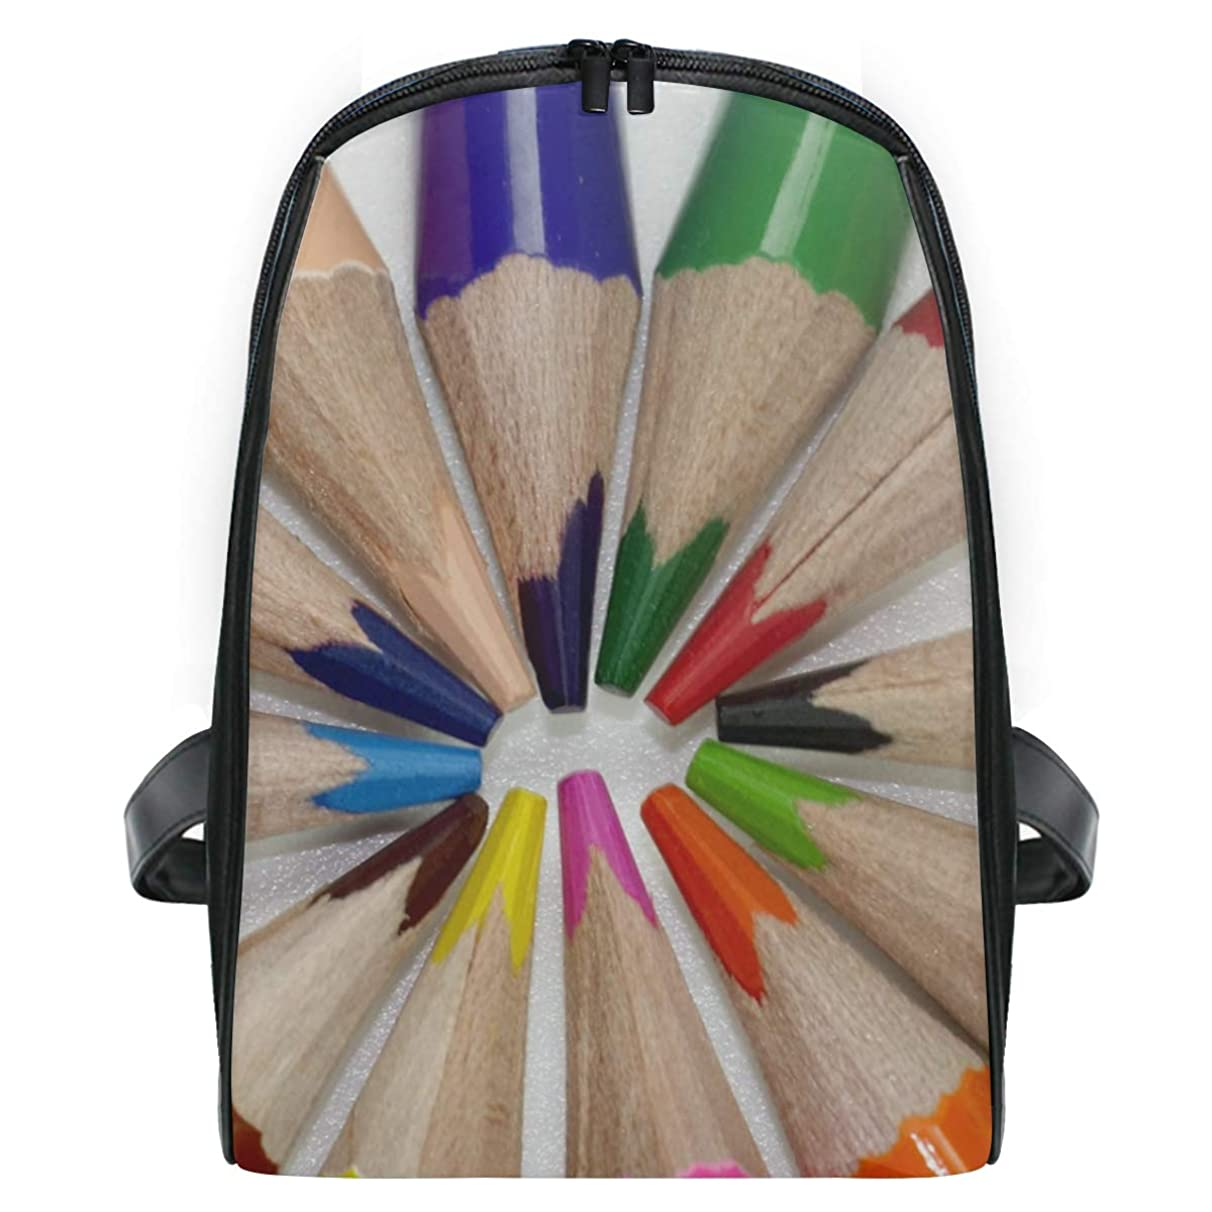 Backpack Colored Pencil Personalized Shoulders Bag Classic Lightweight Daypack